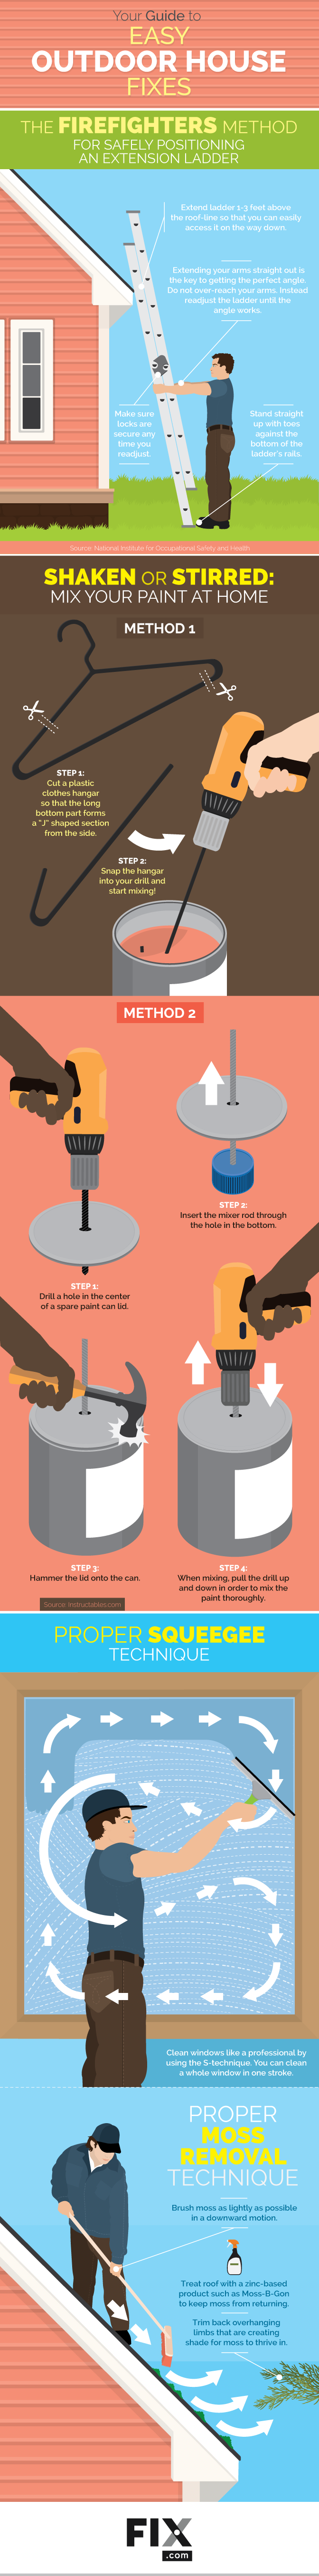 Your Guide to Easy Outdoor House Fixes #infographic